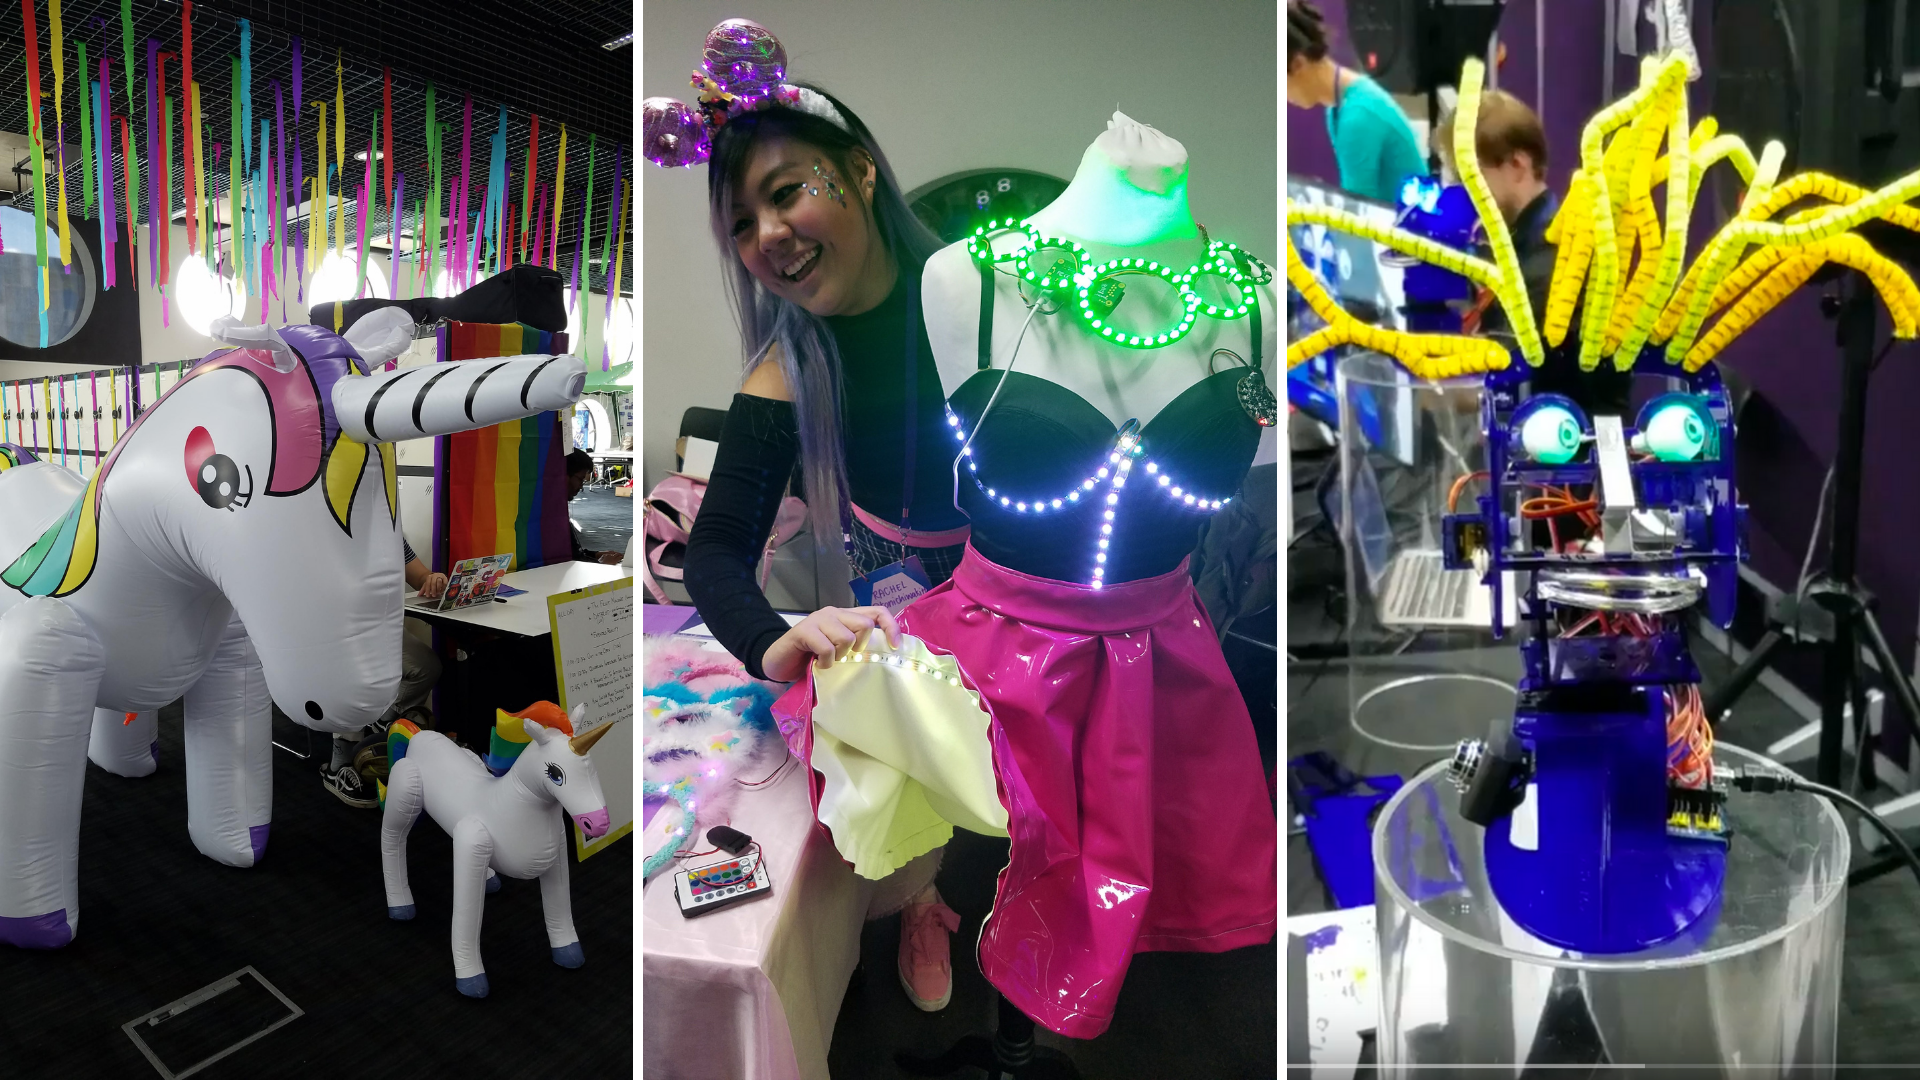 Three photos in a collage. Right: colorful outfit on a mannequin with a person standing behind it. Middle: A person standing on a red carpet and a colorful archway Left: A purple robot with wild yellow hair, eyes, and a mouth